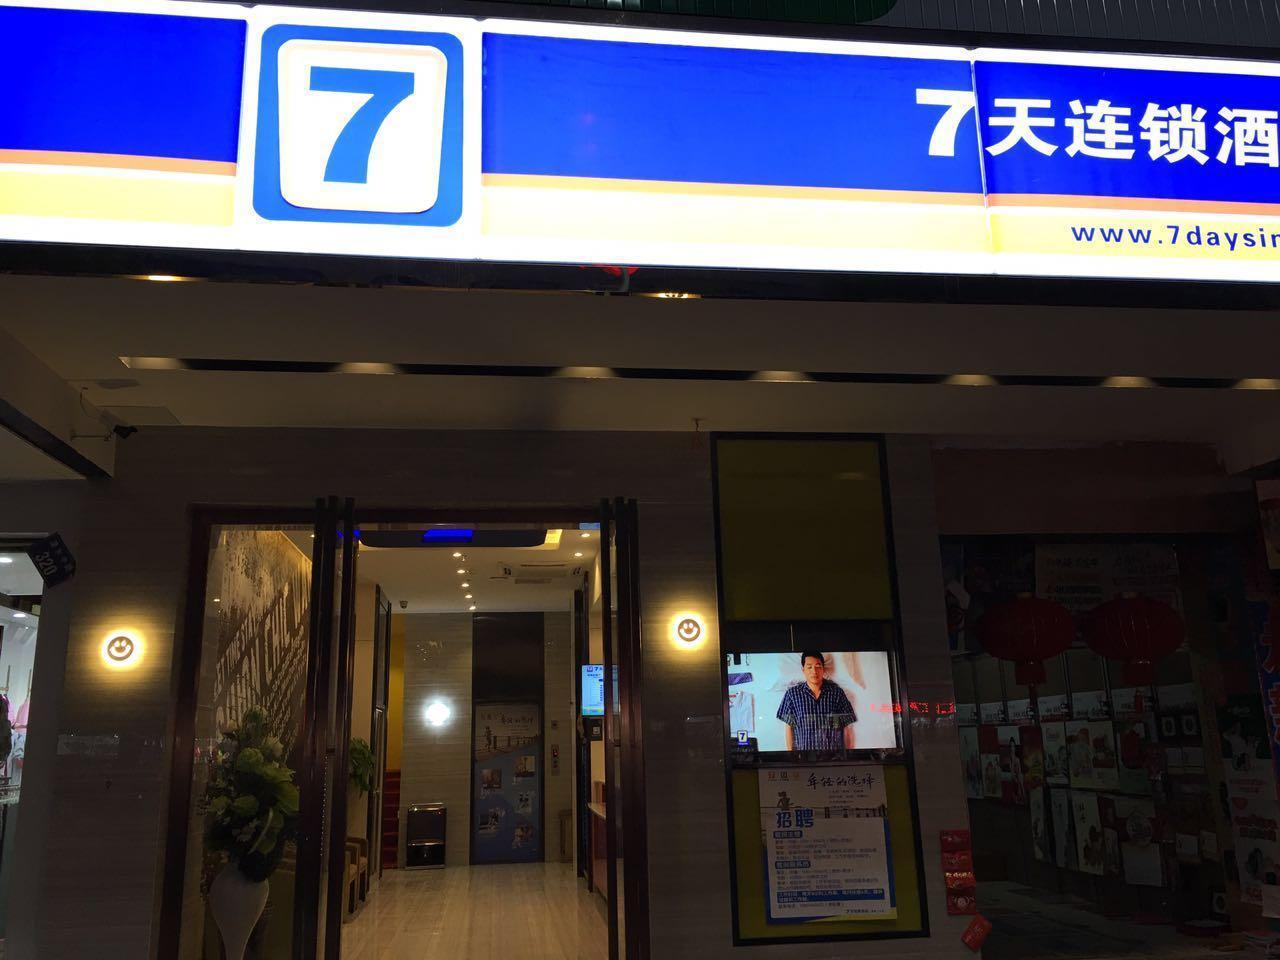 7 Days Inn�Xiaoshui Middle Road Second Middle School